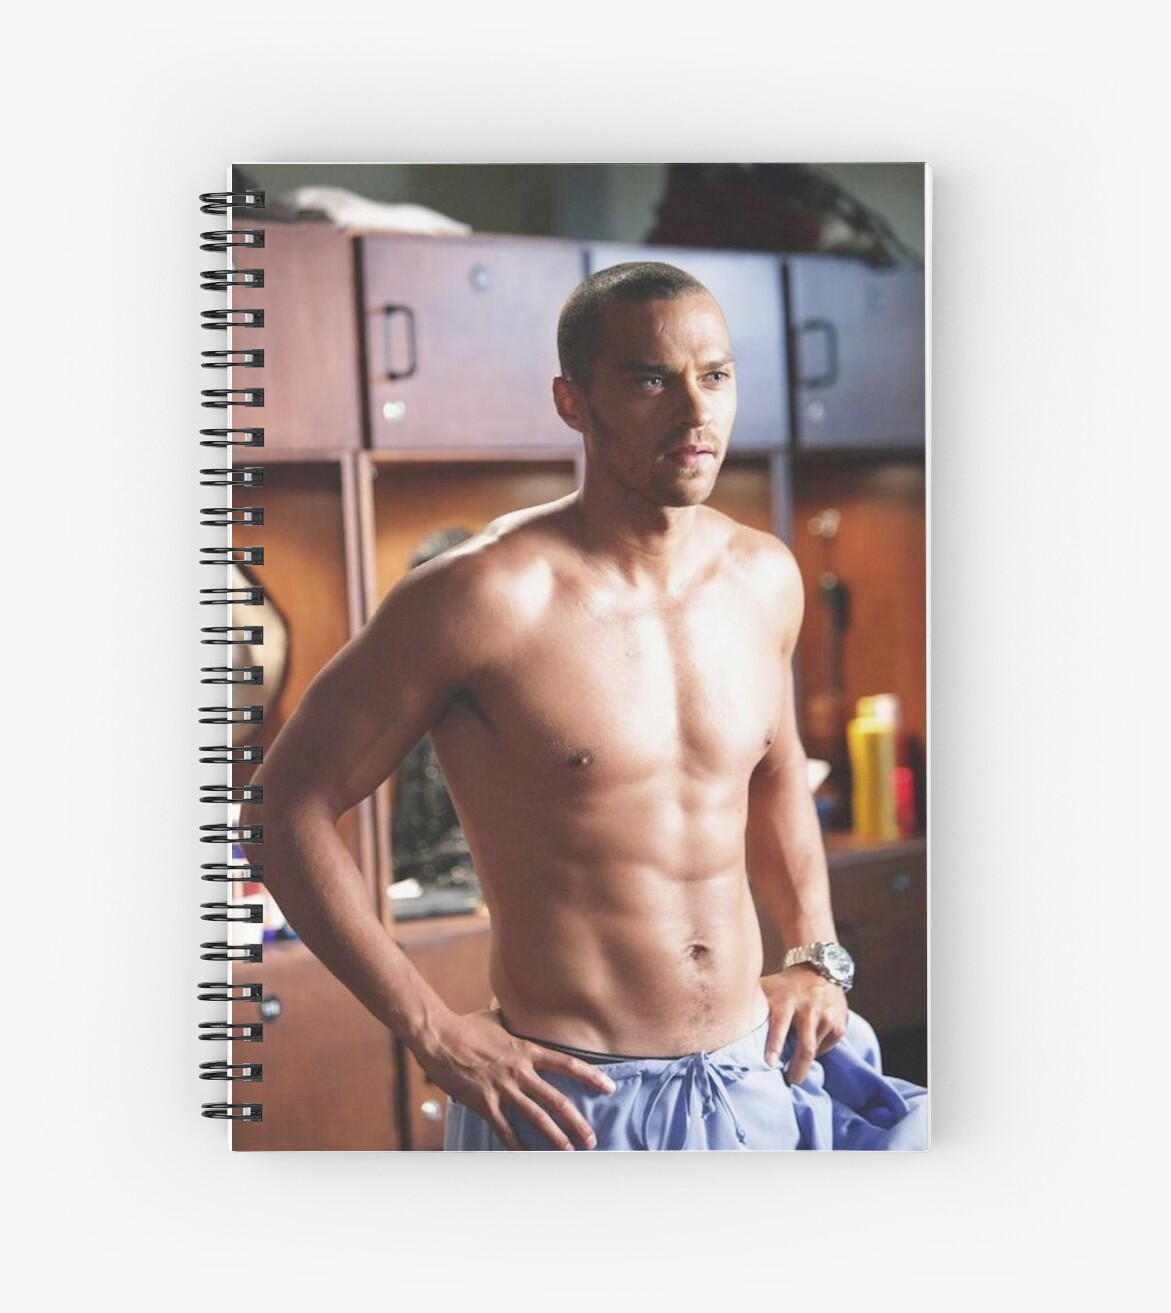 jackson avery spiral notebooks by lauren phinney redbubble